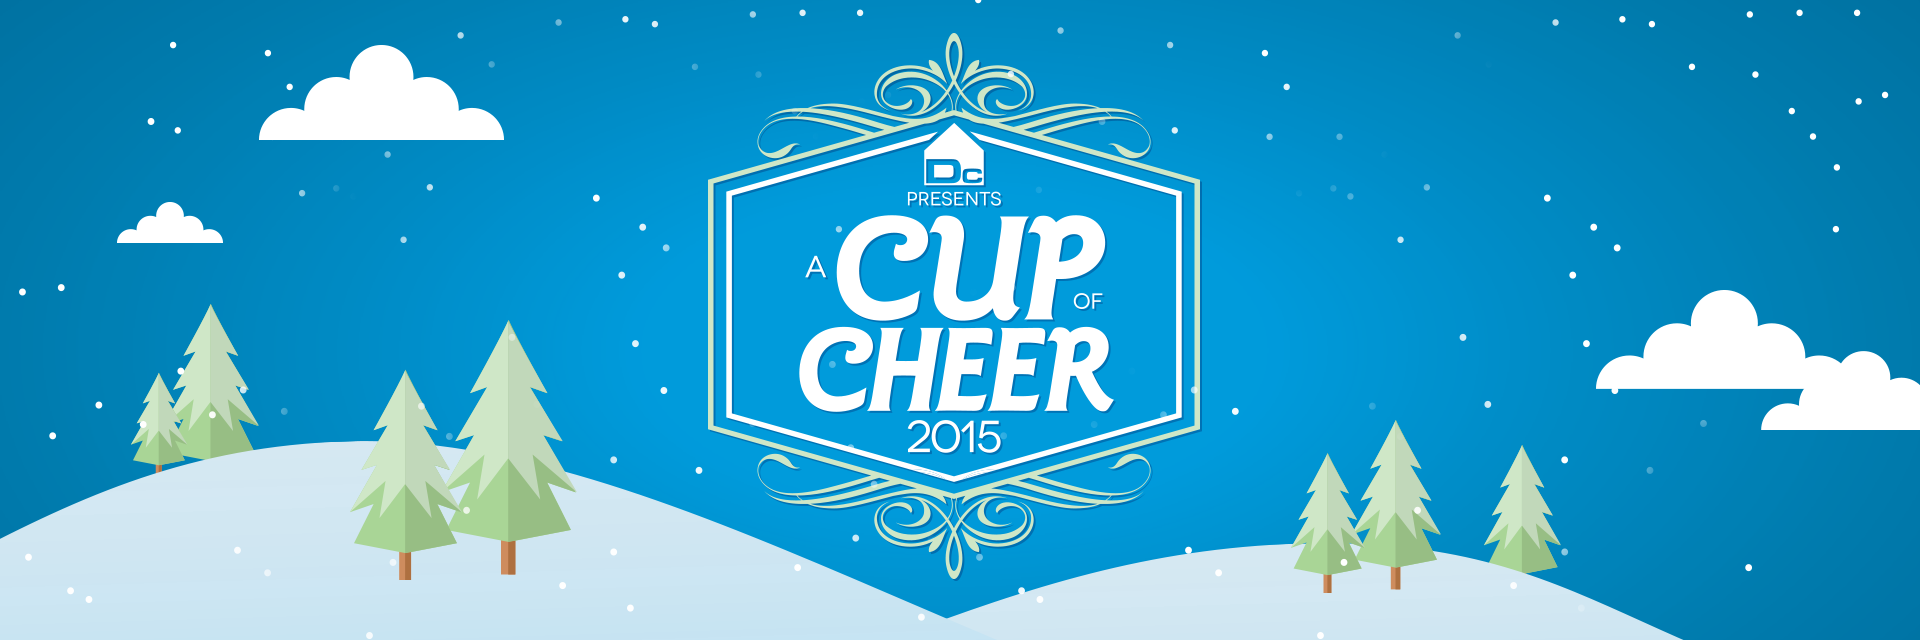 Dc Presents: Our 2nd Annual Cup of Cheer